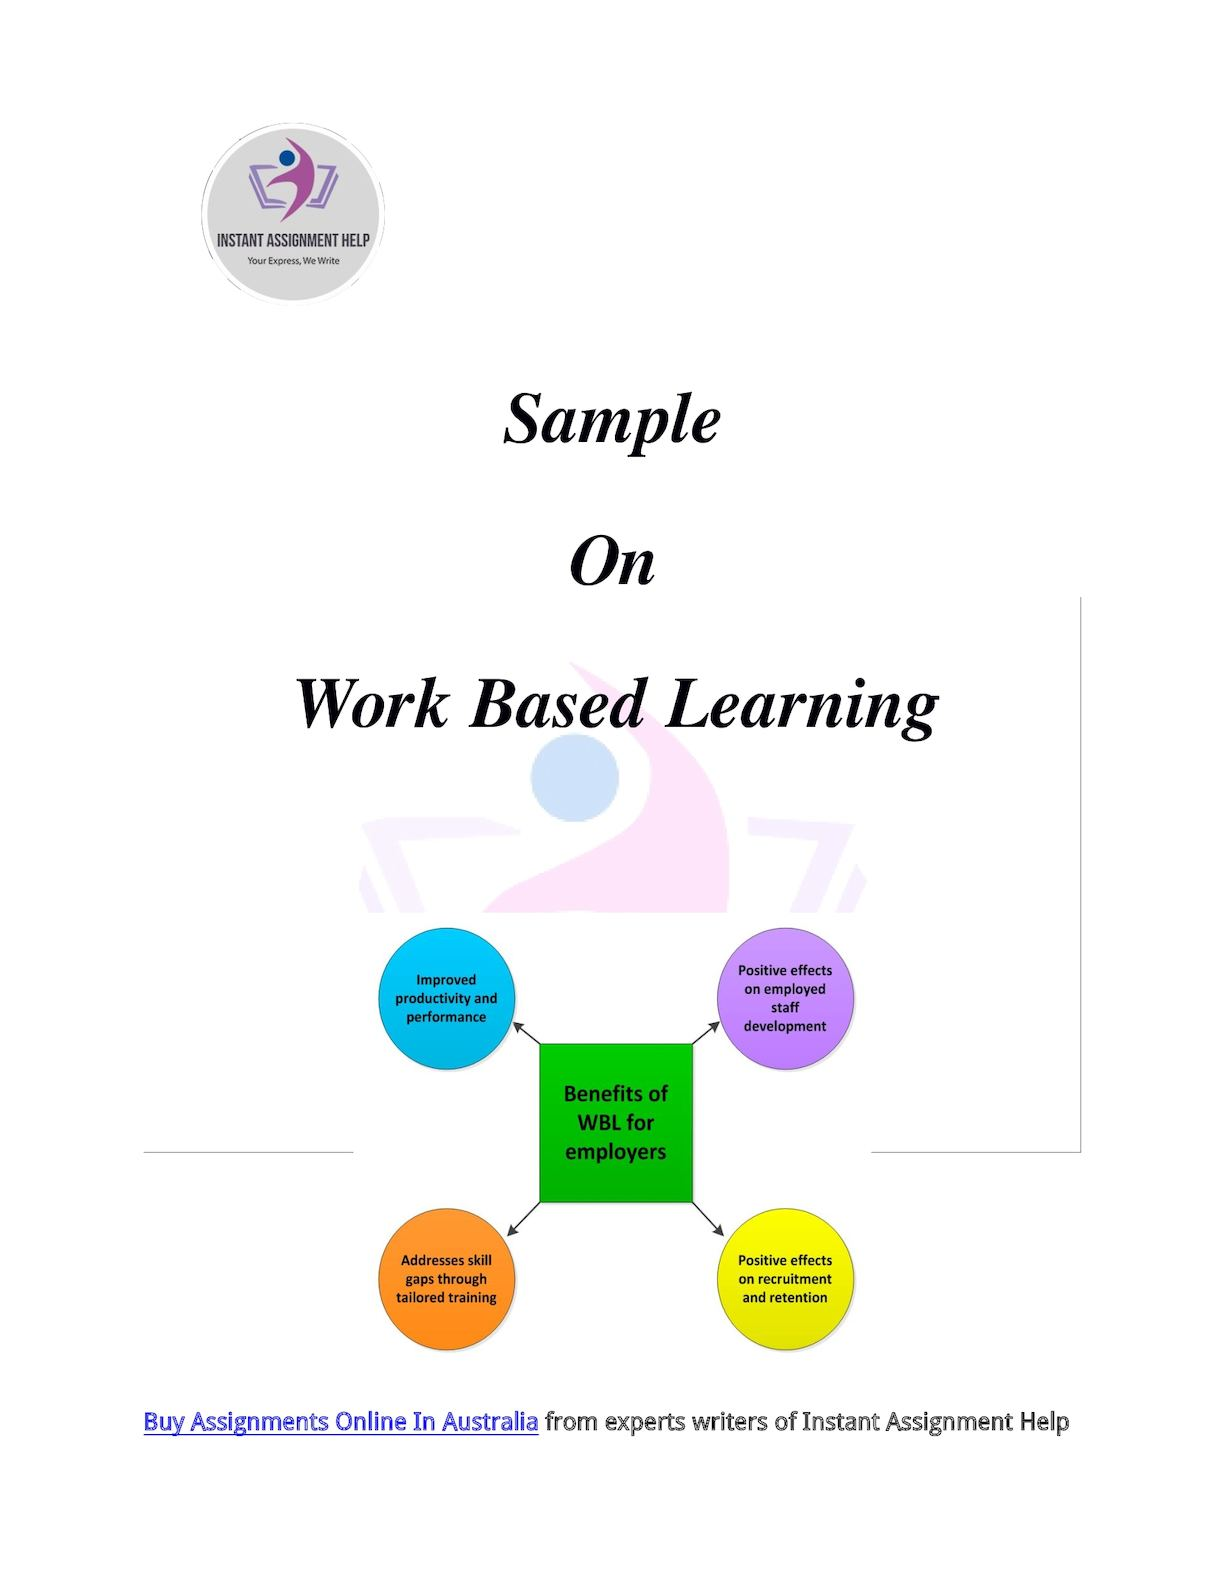 work based learning essay Institute for work and learning collected information on three major wbl models - internships/ co-operative education (co-op), youth apprenticeships, and school-based enterprises (sbe) see sidebar for definitions of these and other forms of wbl.